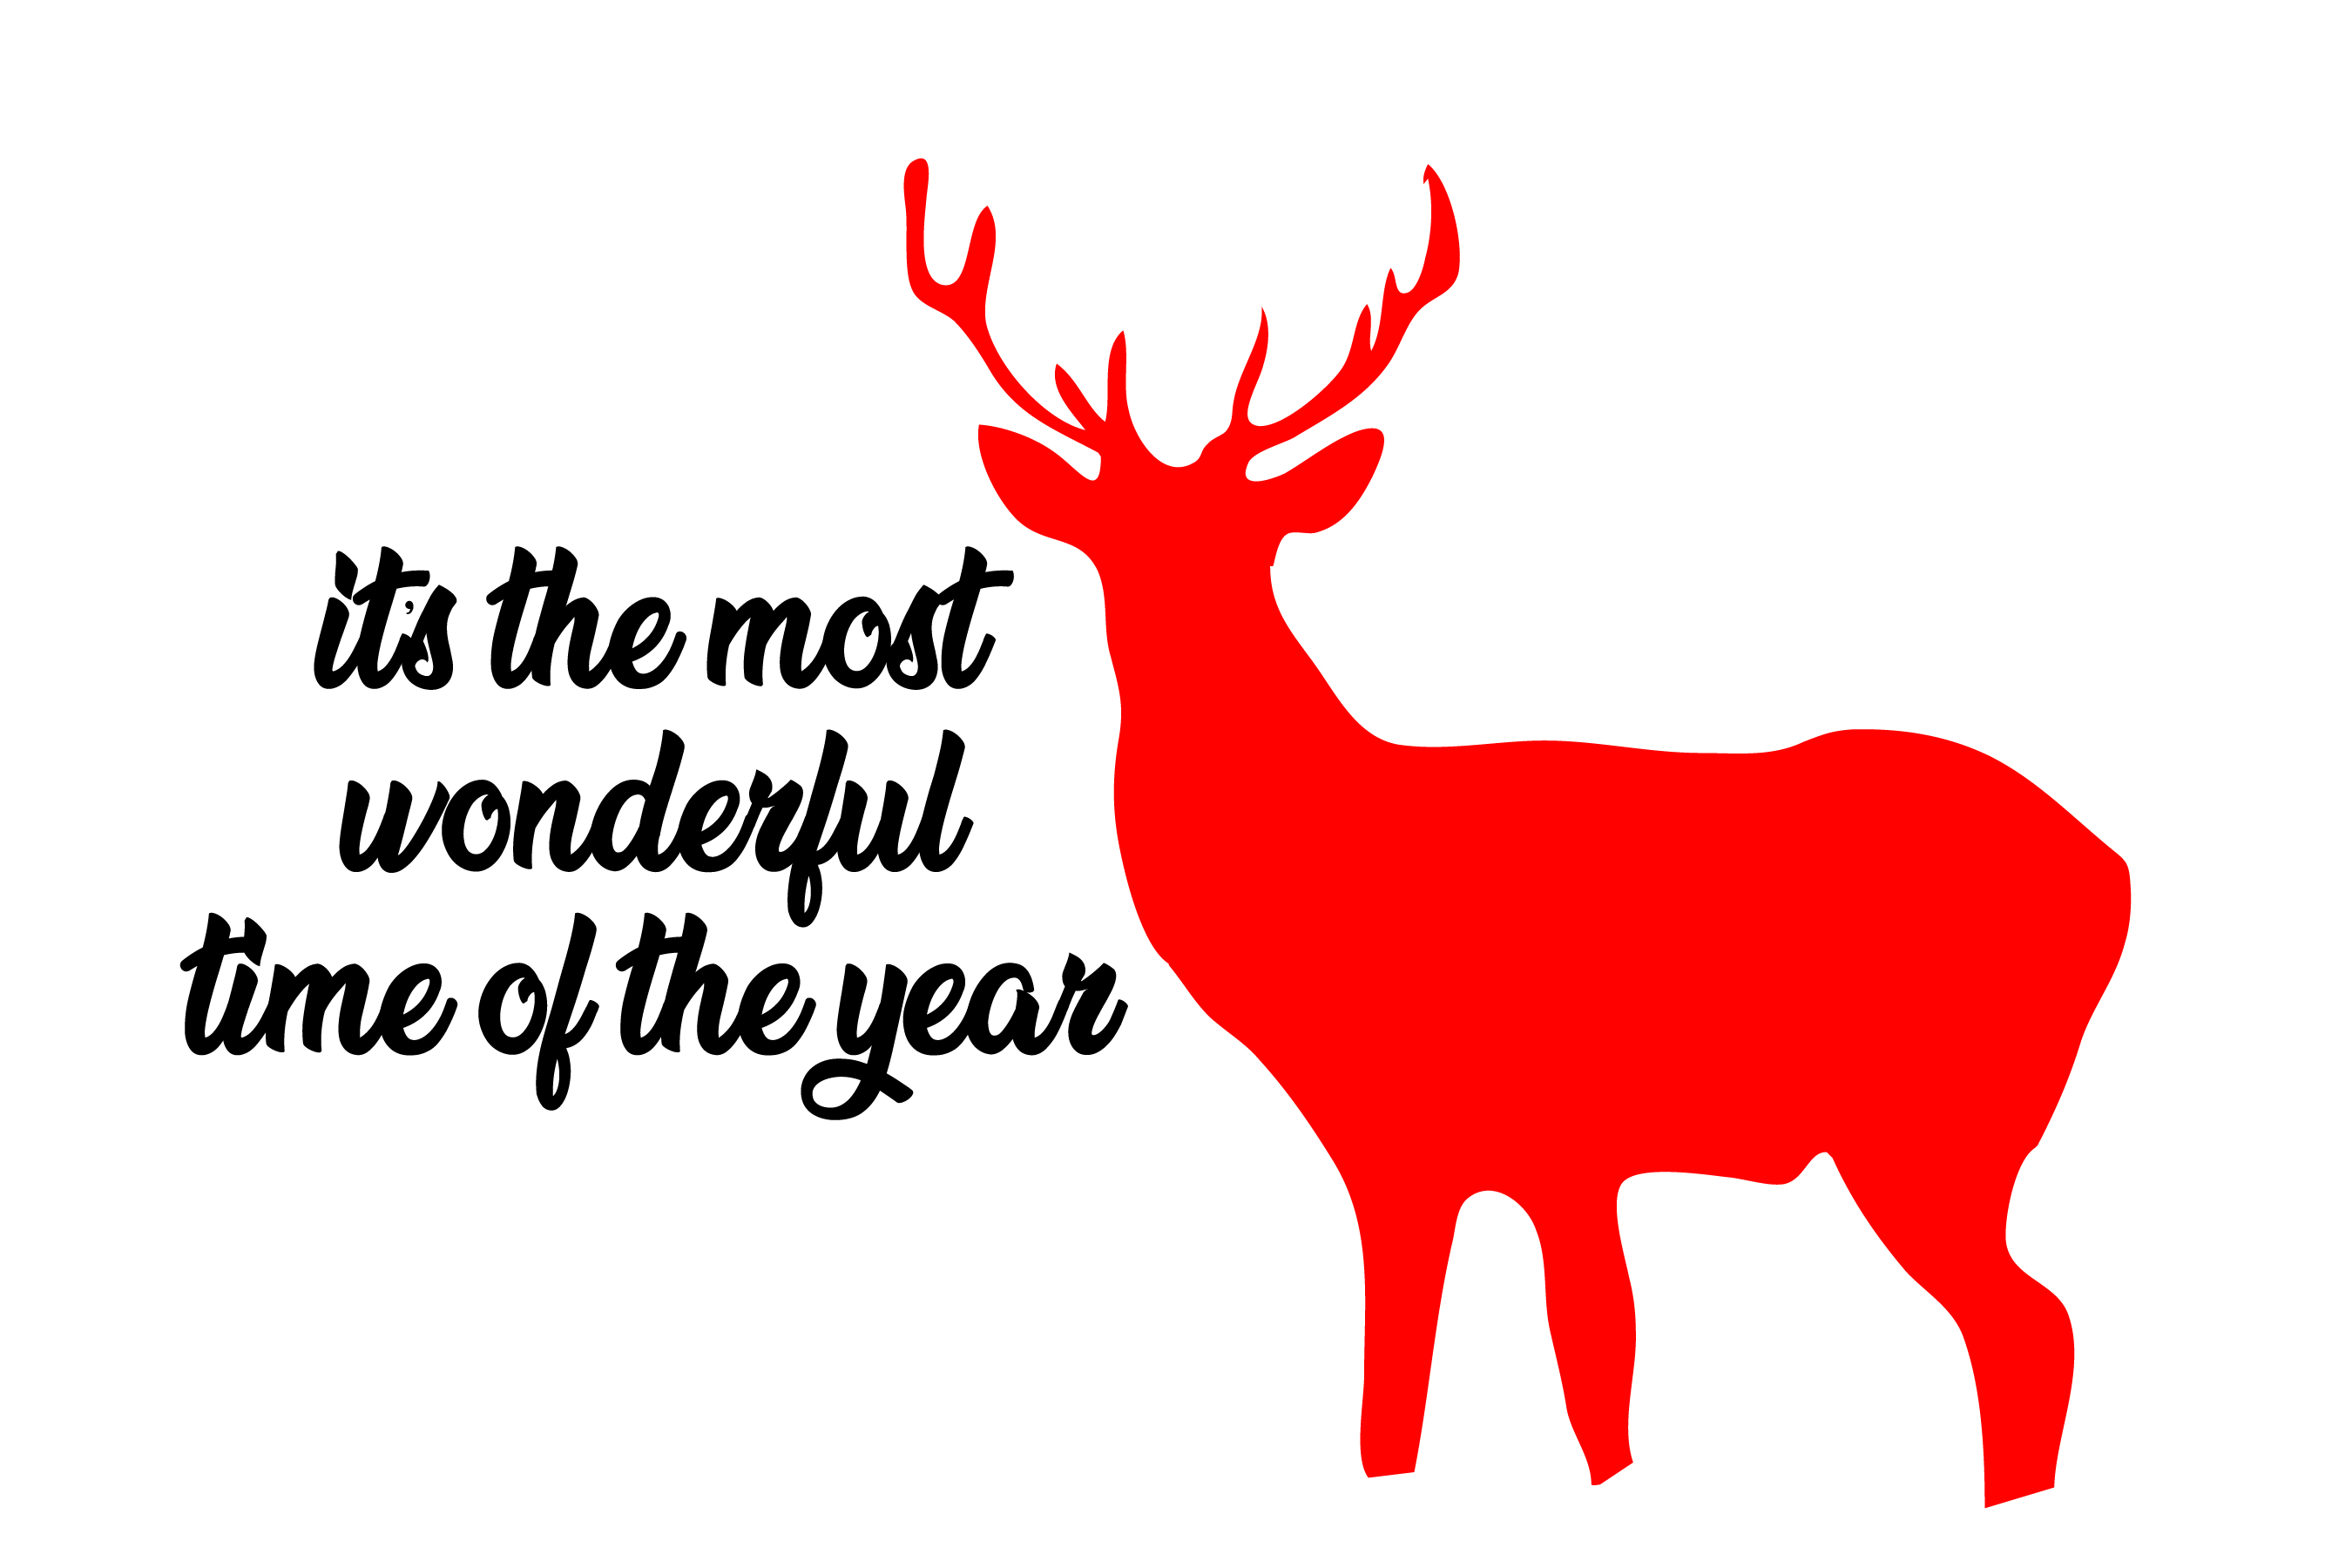 Wonderful time of the year - SVG Bundle 16 Designs example image 7